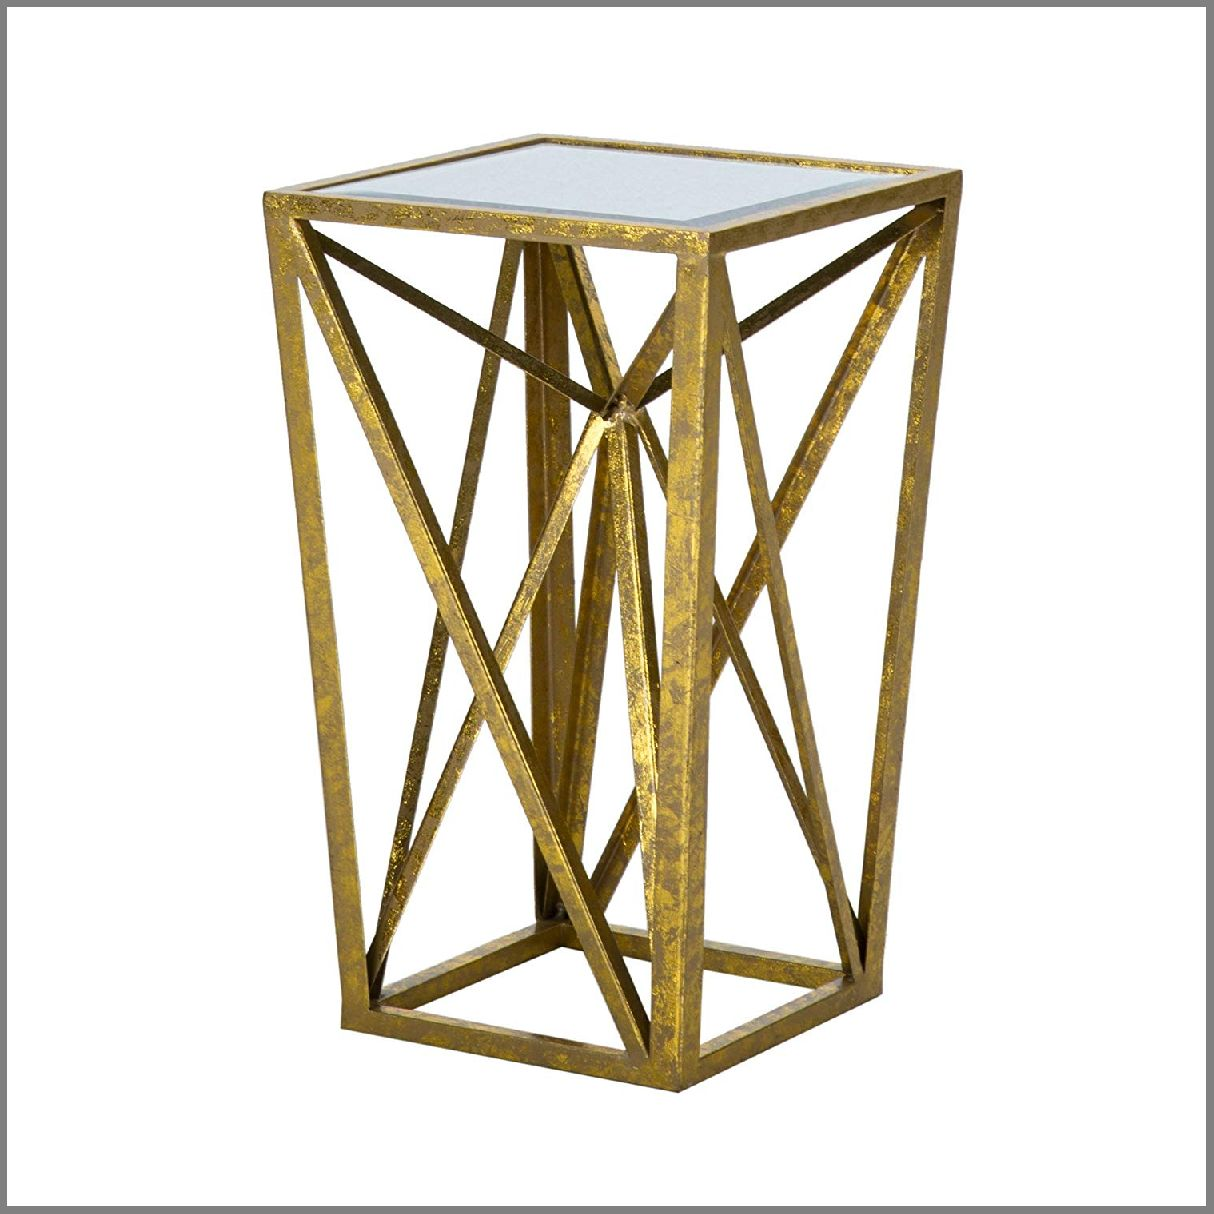 beautifull accent table tables kijiji creapsdrake amazing madison park angular mirror gold kitchen with doors contemporary chandeliers target side chairs dining runner metal lawn